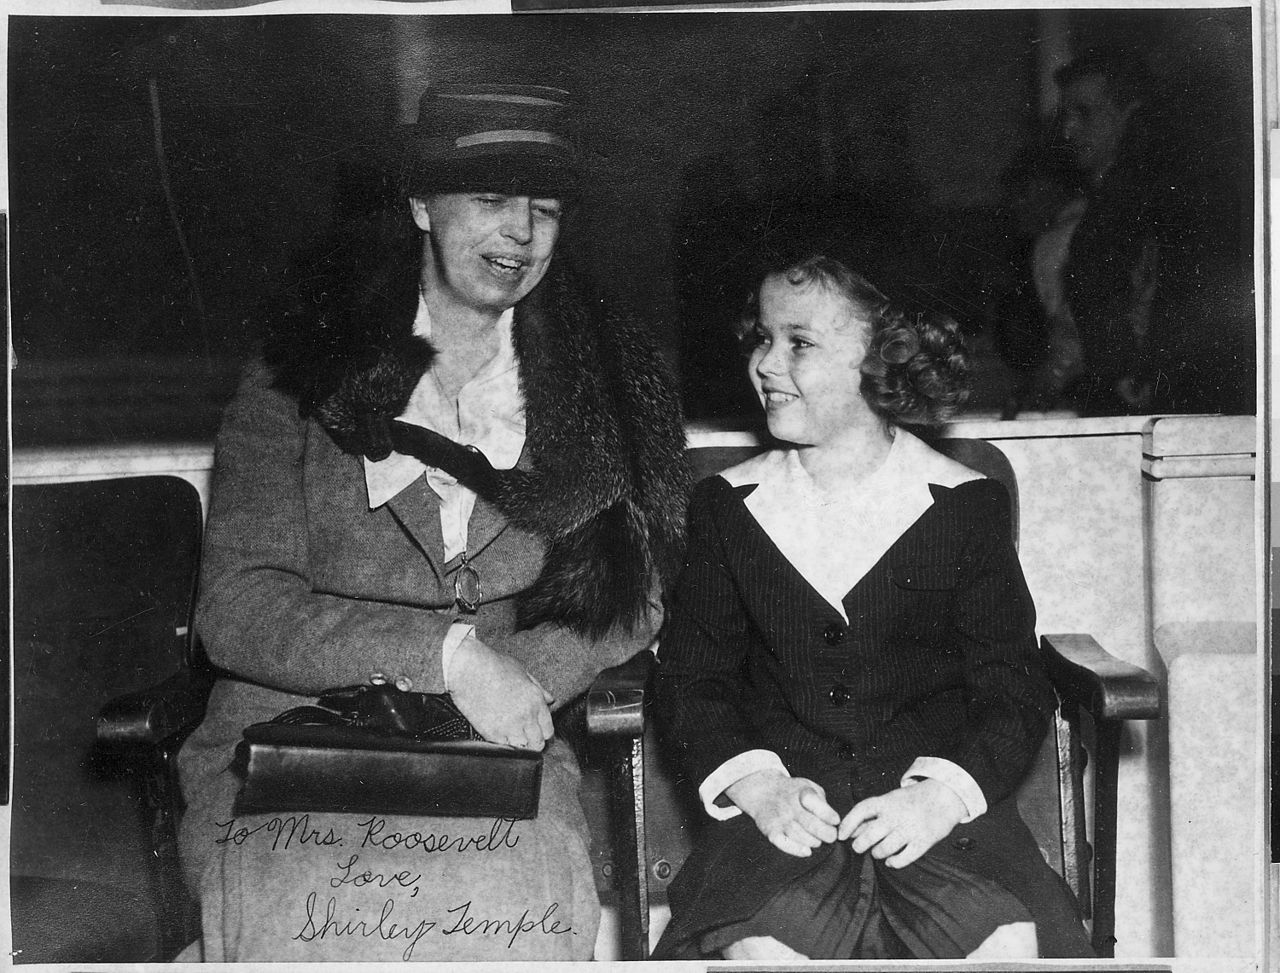 Mrs. Eleanor Roosevelt sits next to a 10-year old Shirley Temple. Both are smiling.